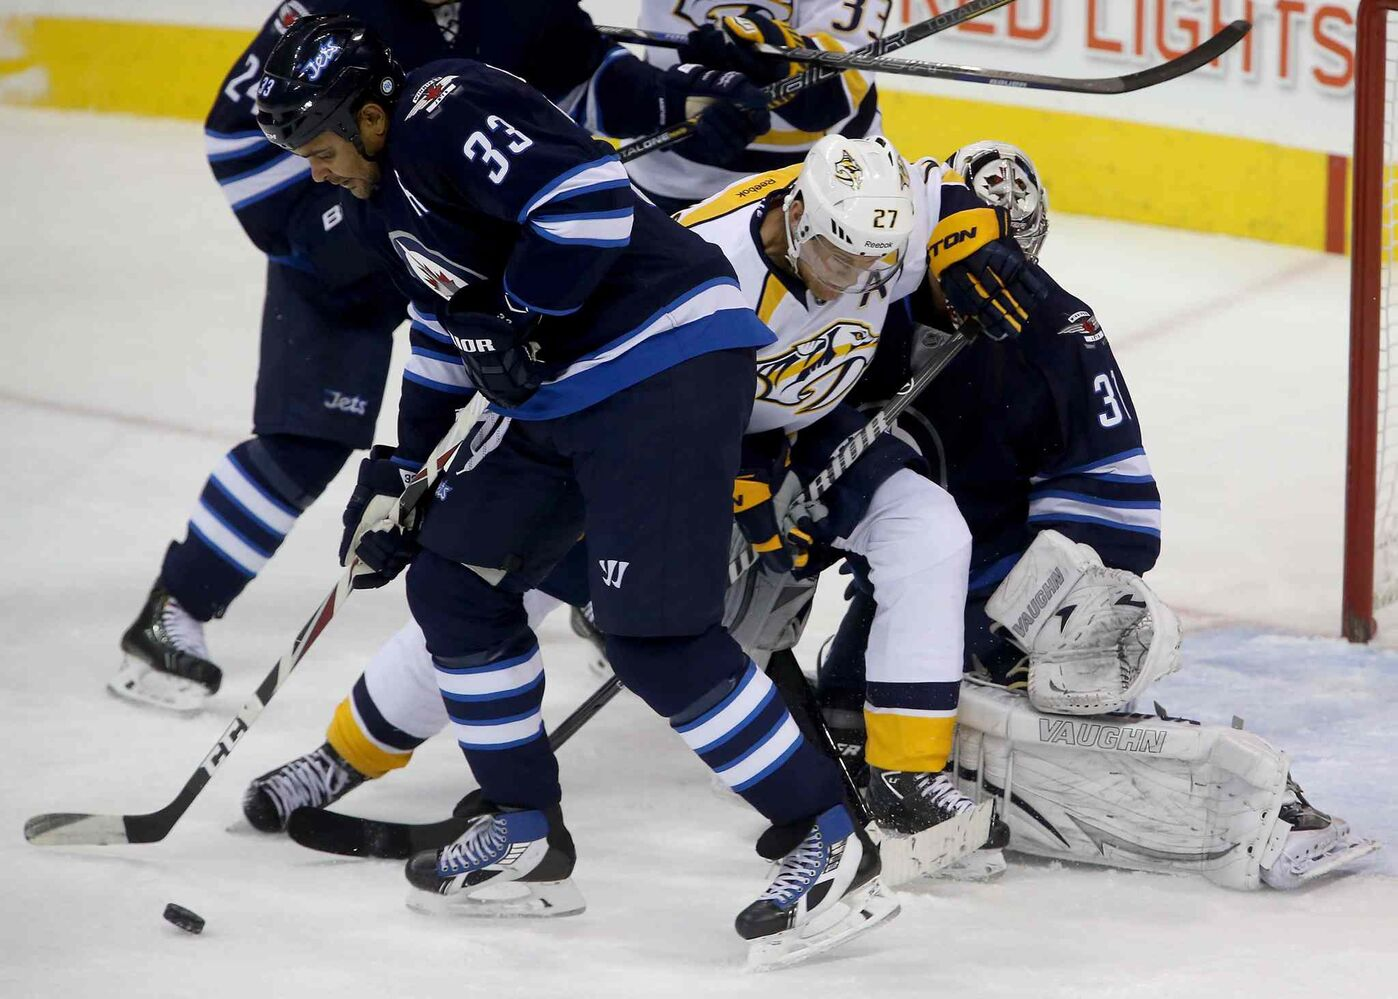 Winnipeg Jets' Dustin Byfuglien blocks a shot as Nashville Predators' Patric Hornqvist (27) screens goaltender Ondrej Pavelec during the first period. (TREVOR HAGAN / THE CANADIAN PRESS)